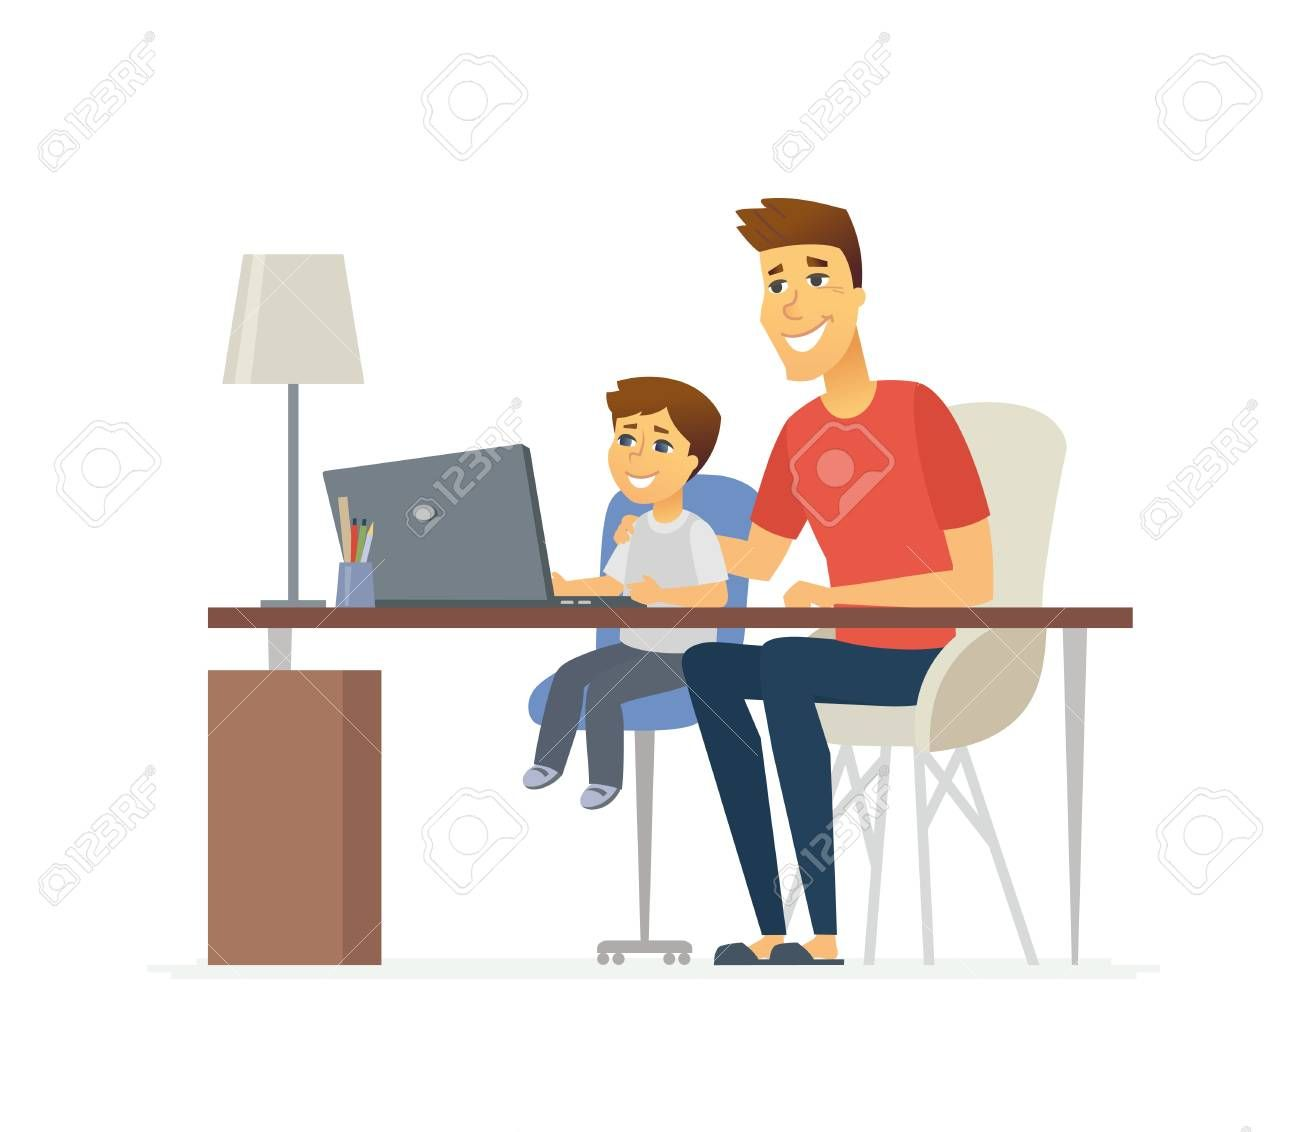 Father And Son At The Laptop Cartoon People Characters Illustration Isolated On White Background Y Vintage Logo Design Cartoon People Learn Computer Science